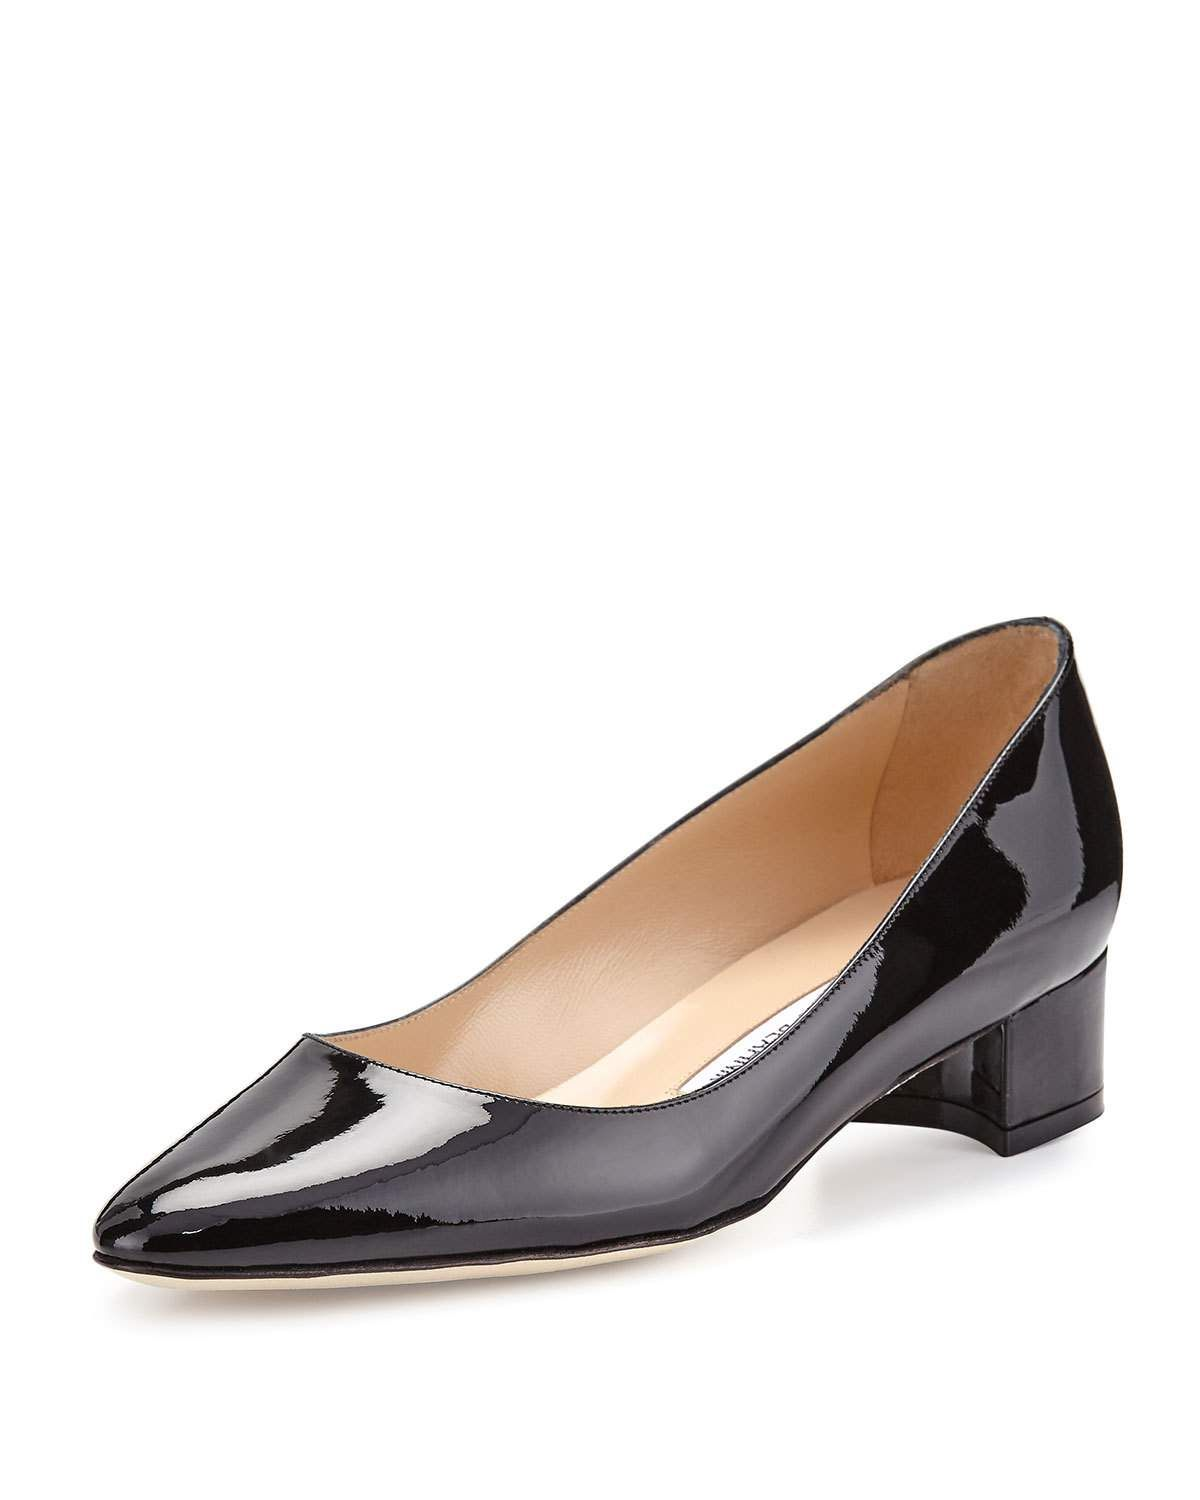 fcab74c5cdd1a Listony Patent Low-Heel Pump | Shoes | Black pumps heels, Manolo ...